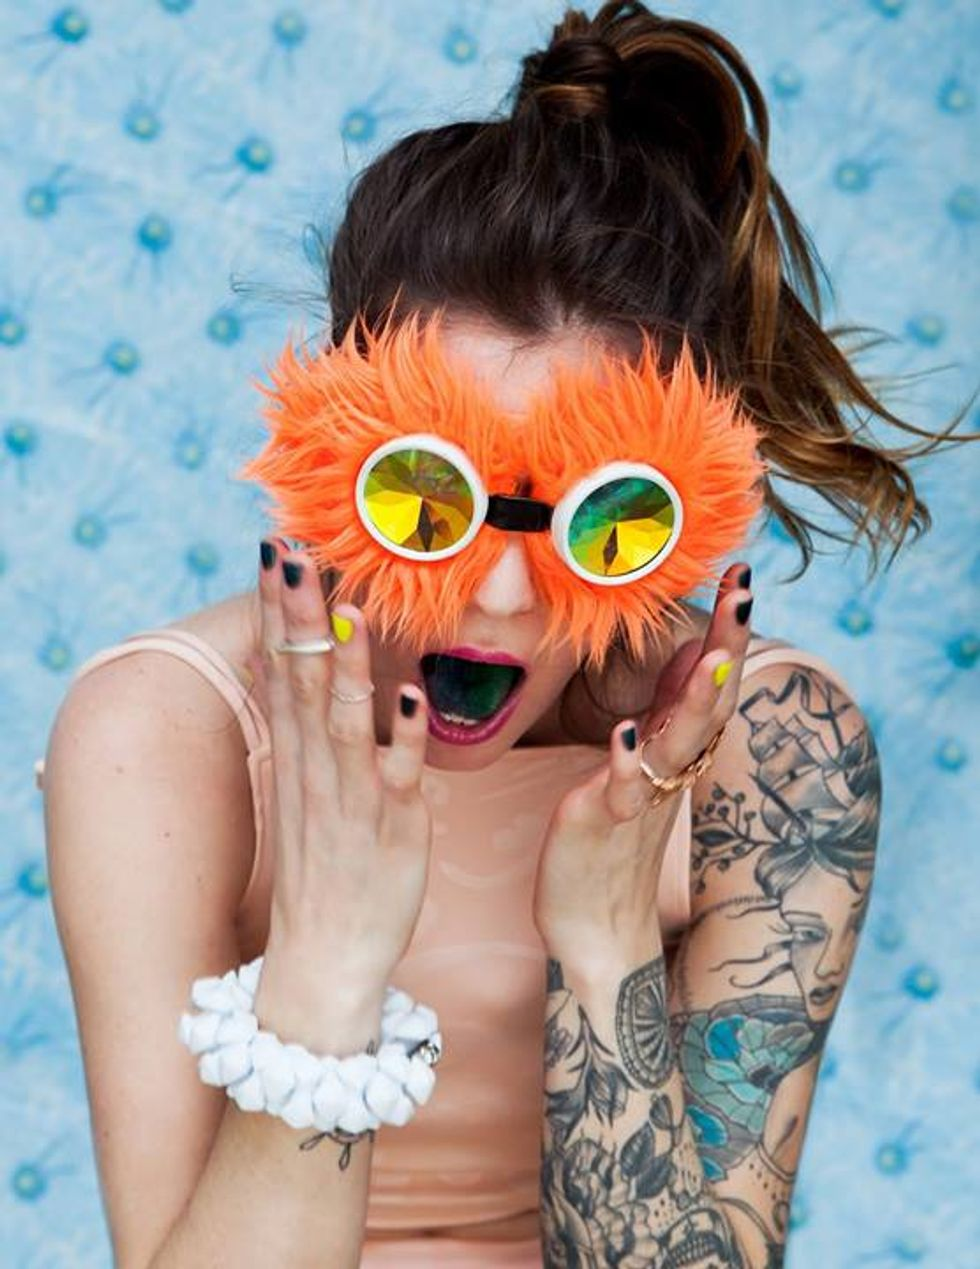 Seasick Mama: The Buzzy Pop Singer Who Gives Good Face